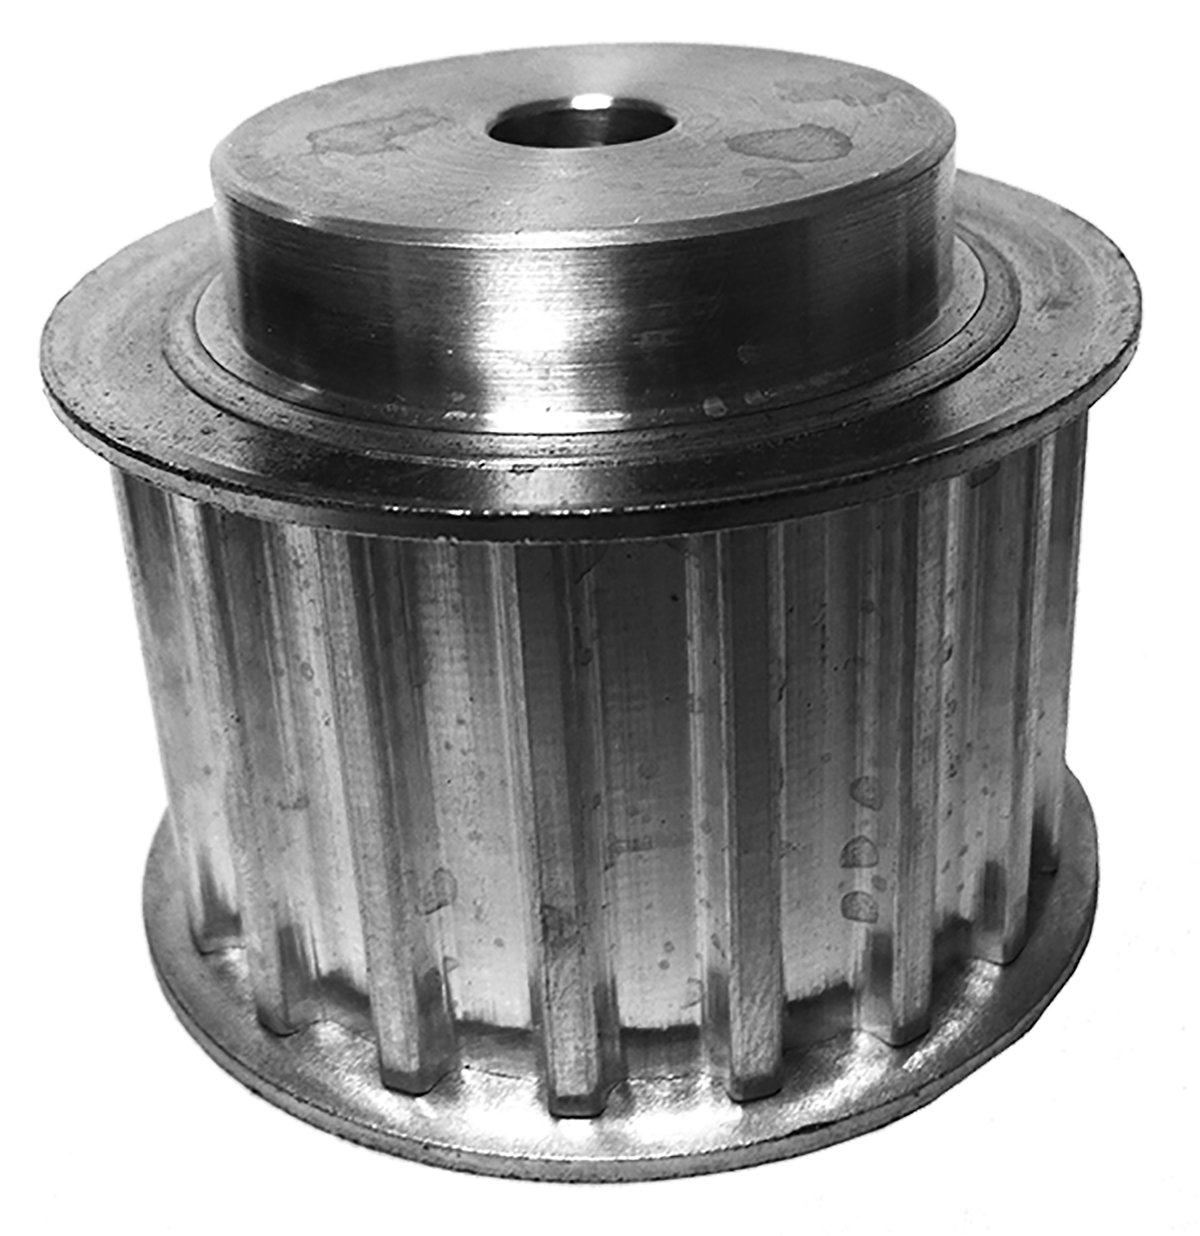 47AT10/32-2 - Aluminum Metric Pulleys